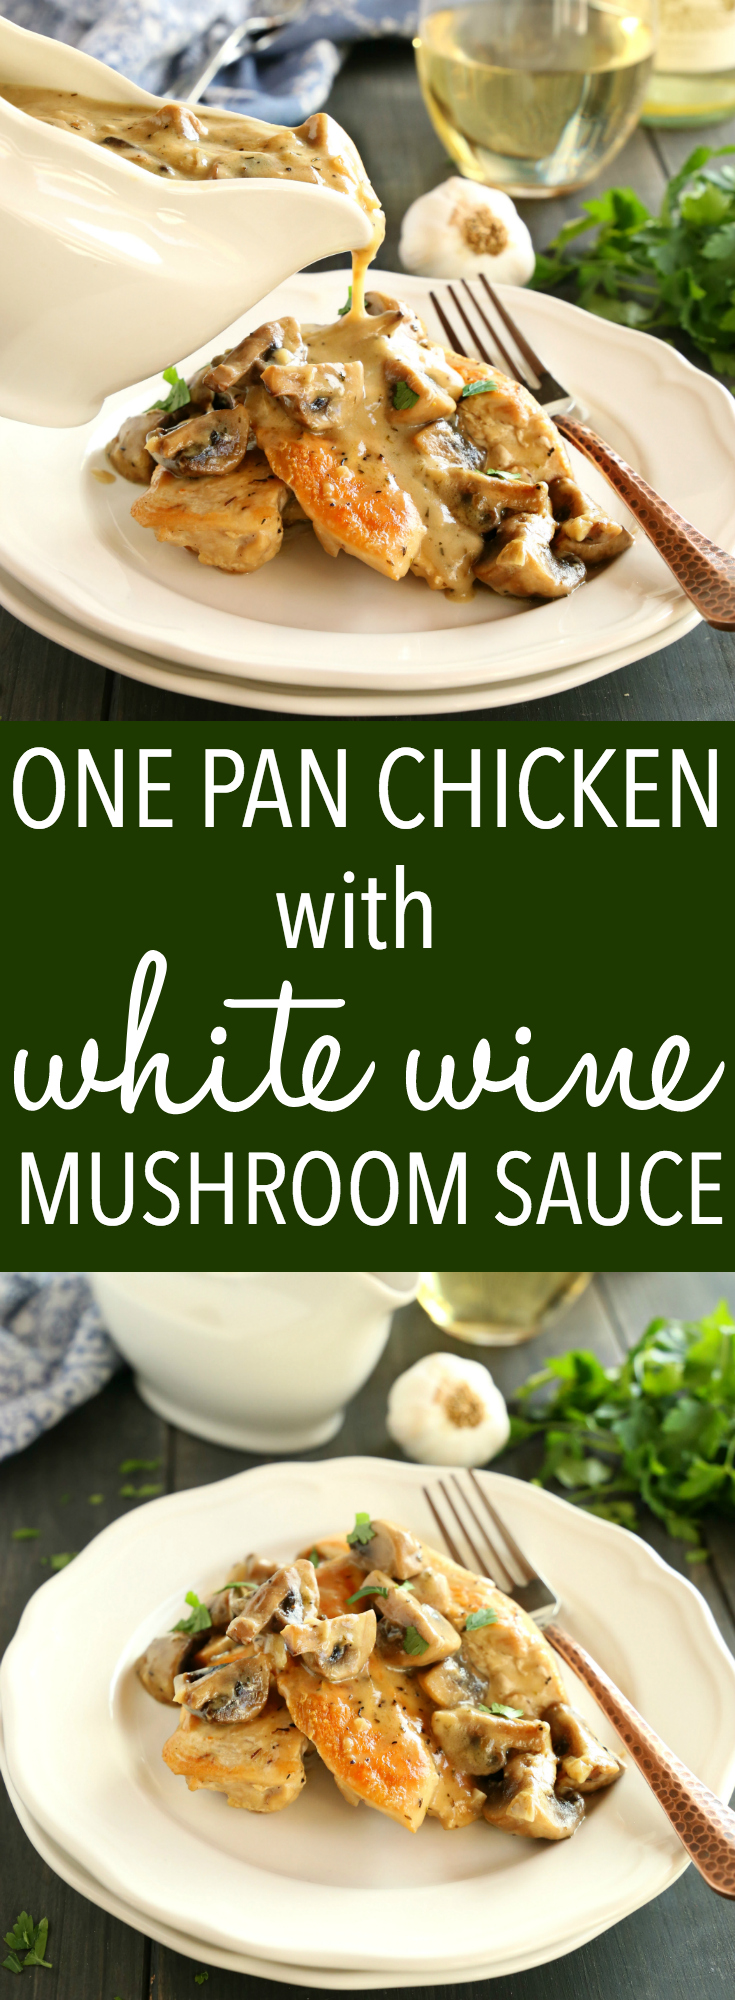 This One Pan Chicken with White Wine Mushroom Sauce is a super delicious restaurant-quality main dish that's so easy to make in only one pan! Recipe from thebusybaker.ca! #easychickenrecipe #mushroomgravy #easywhitewinesauce via @busybakerblog